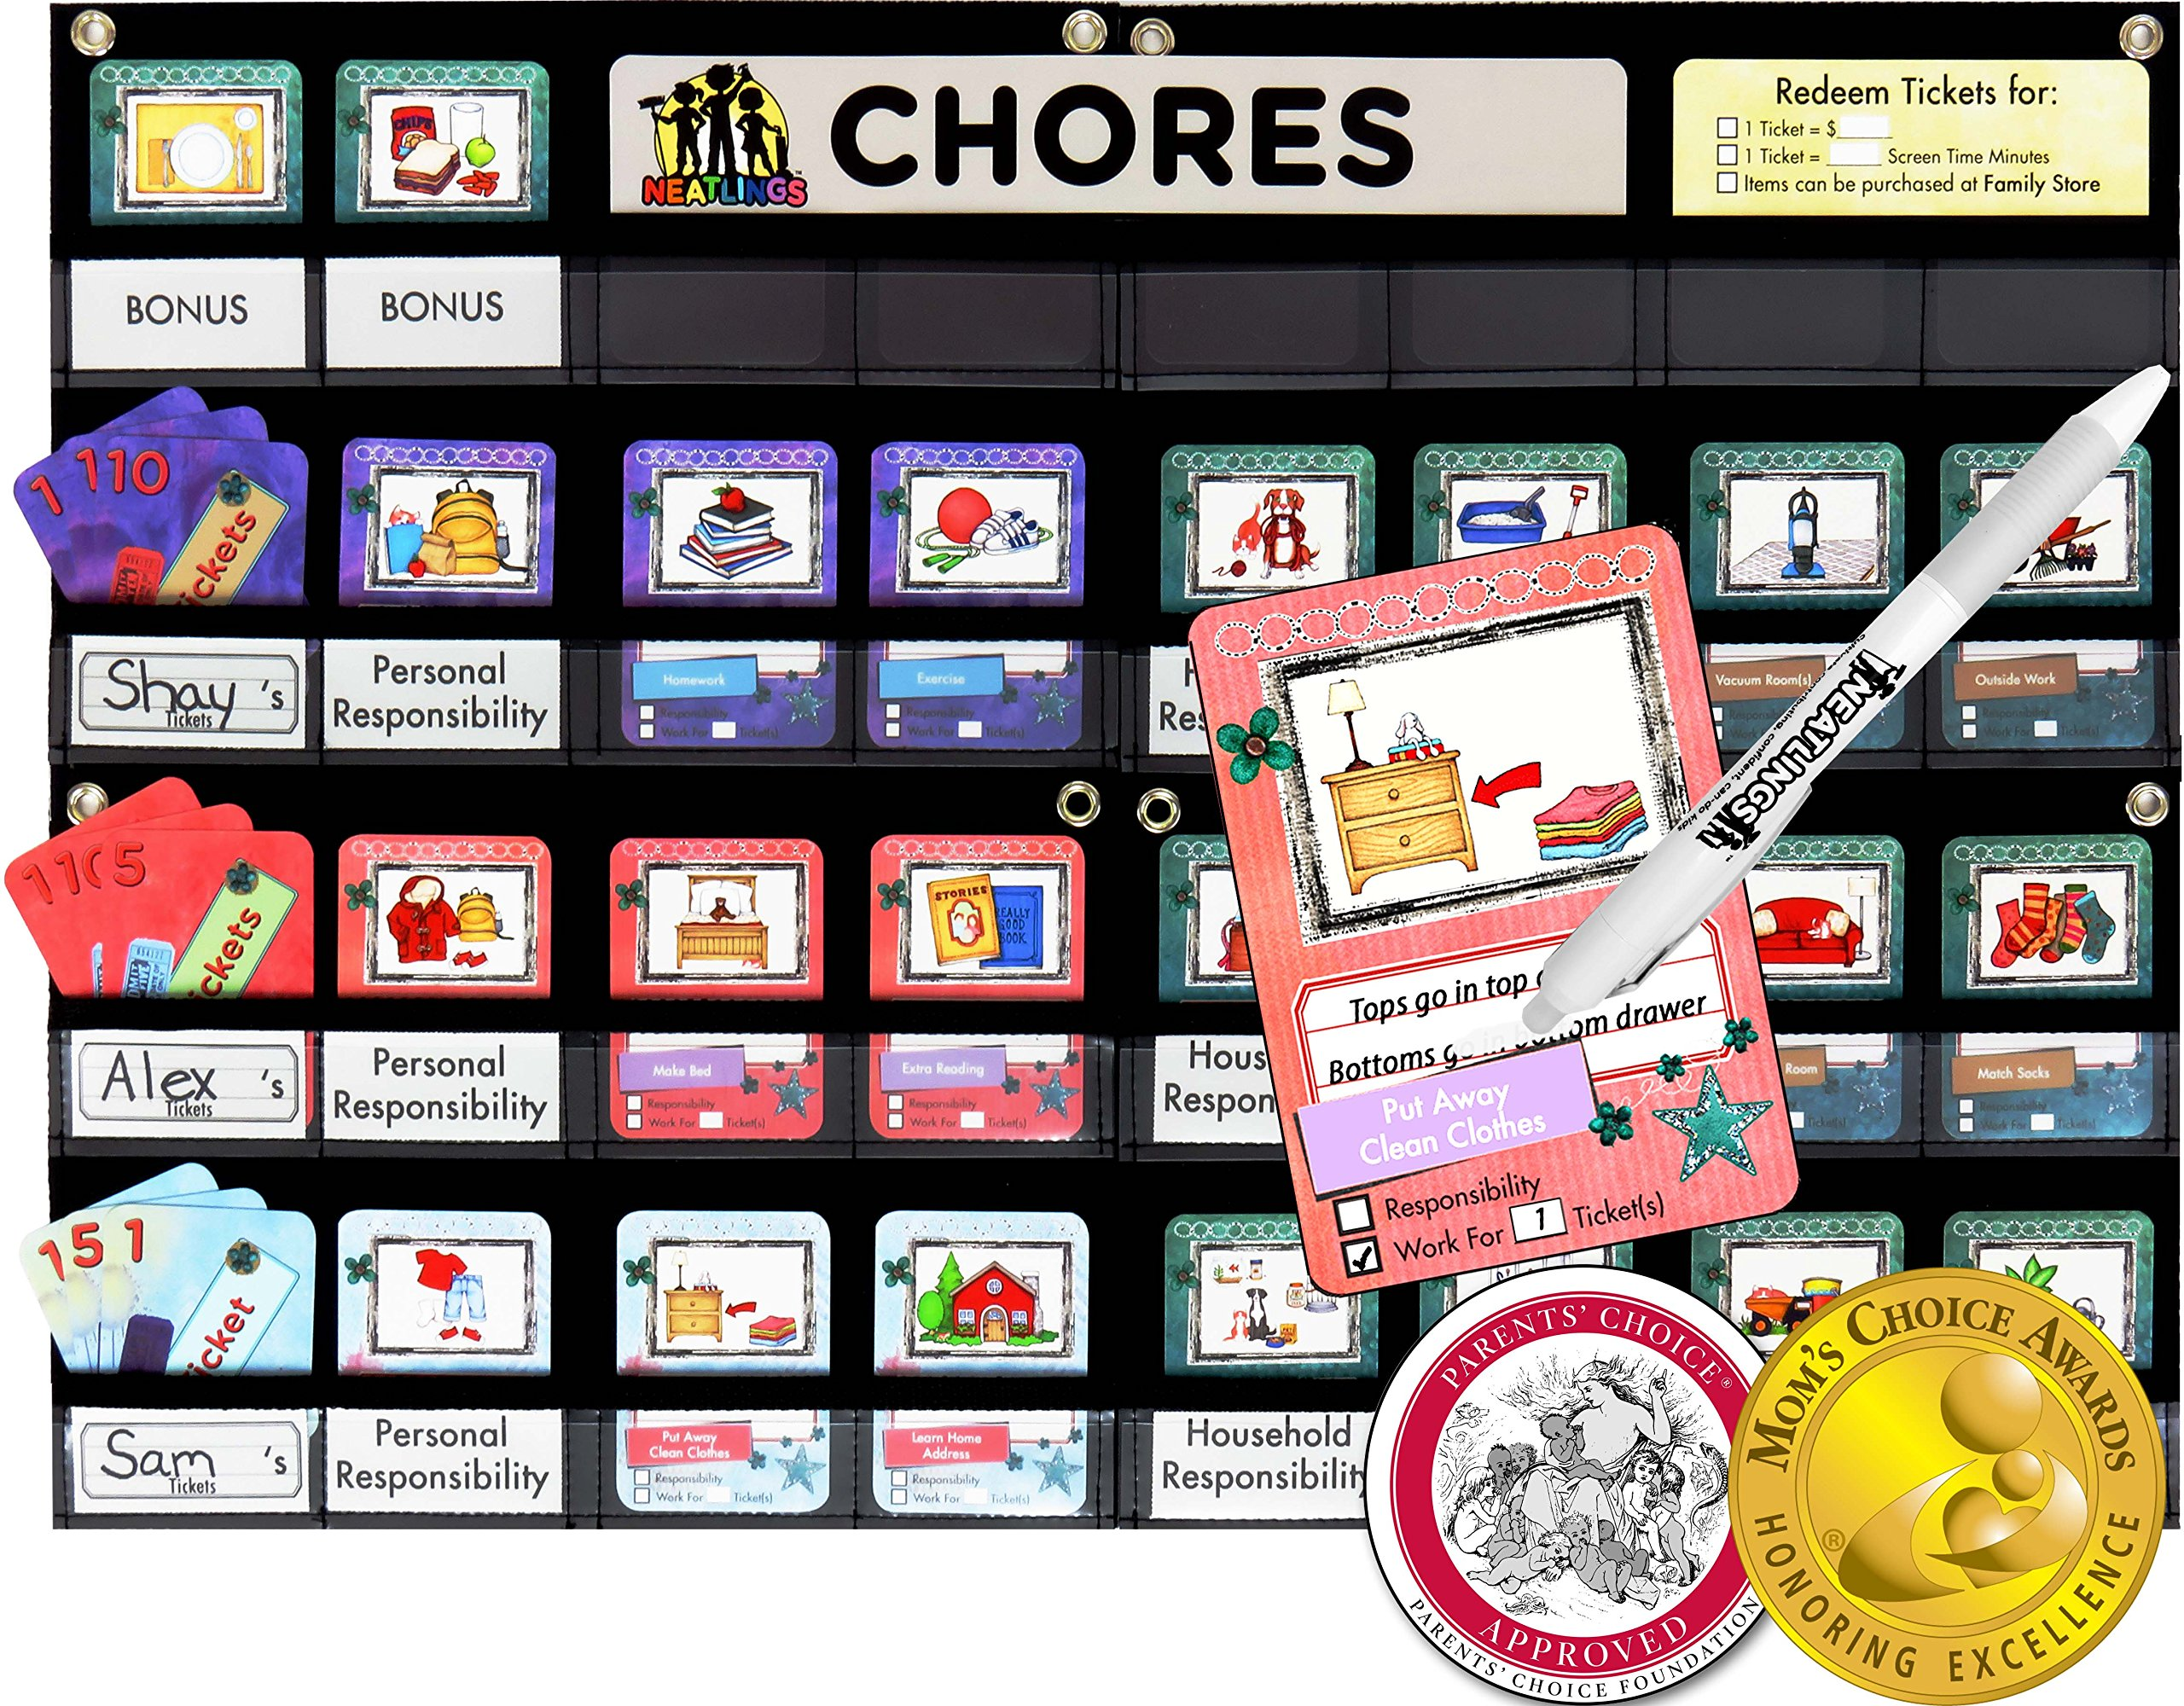 NEATLINGS Chore Chart System | Reward Responsibility | Customize for 1-3 kids | 76 Unique Chores! |Teal Household Chore Cards / Purple, Pink, & Light Blue Self-Care Chore Cards